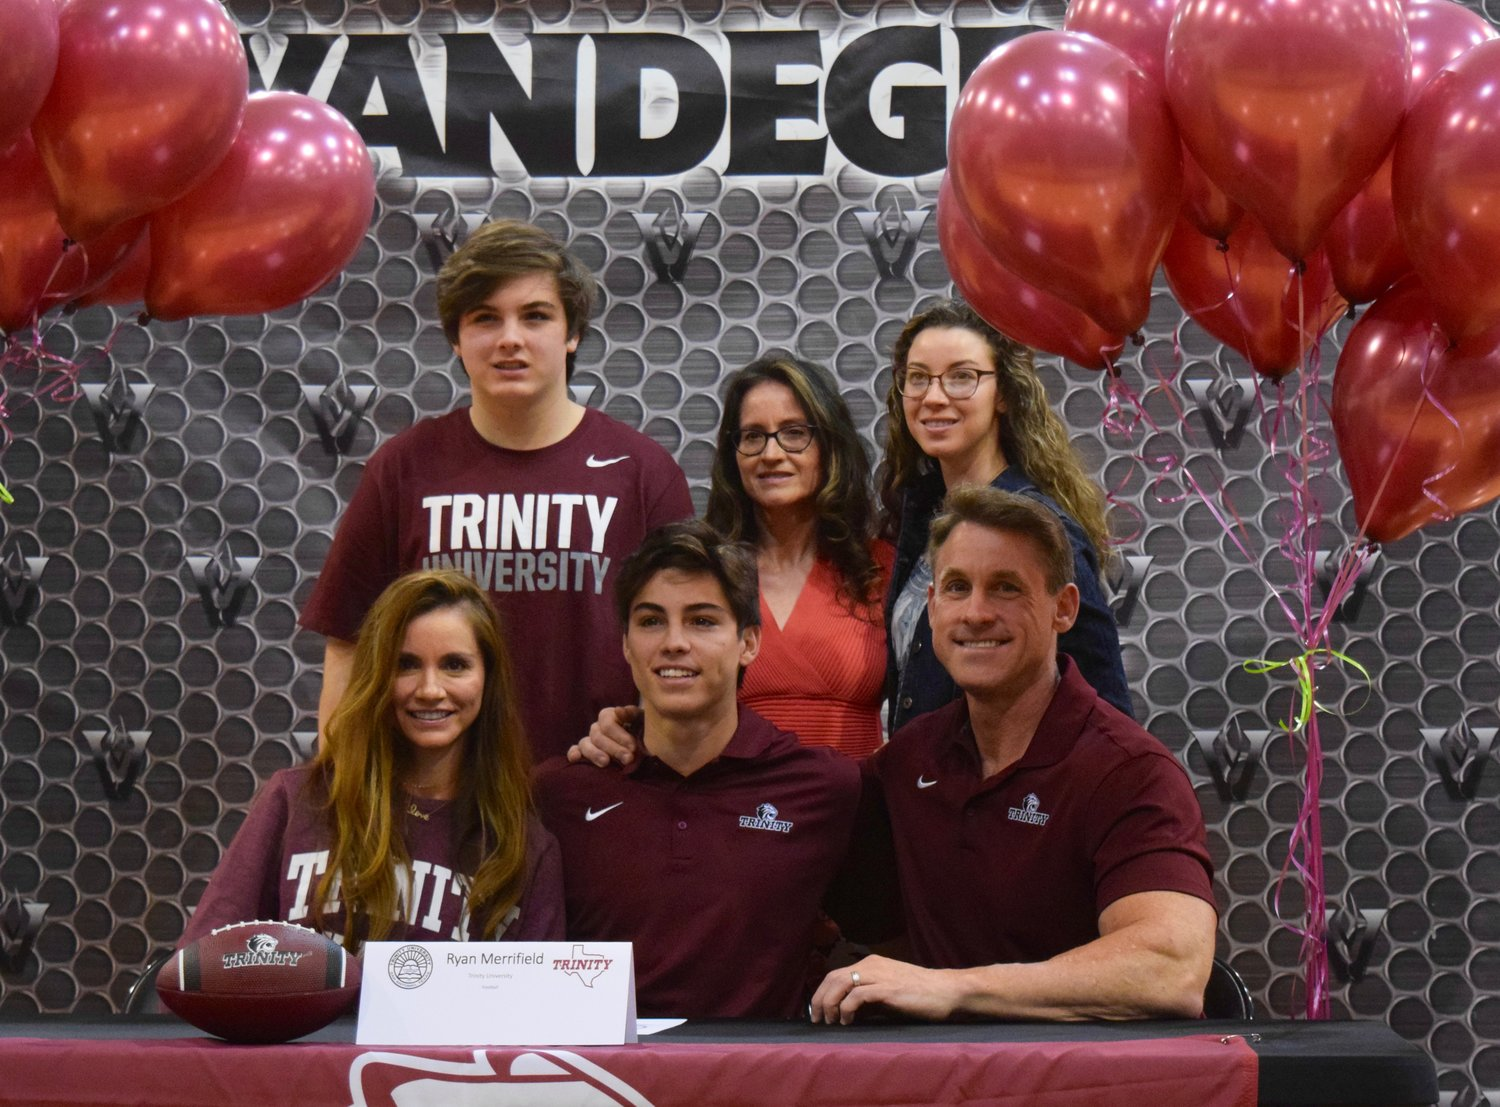 Ryan Merrifield signed on to play football at Trinity at a signing day celebration Friday morning at Vandegrift High School.